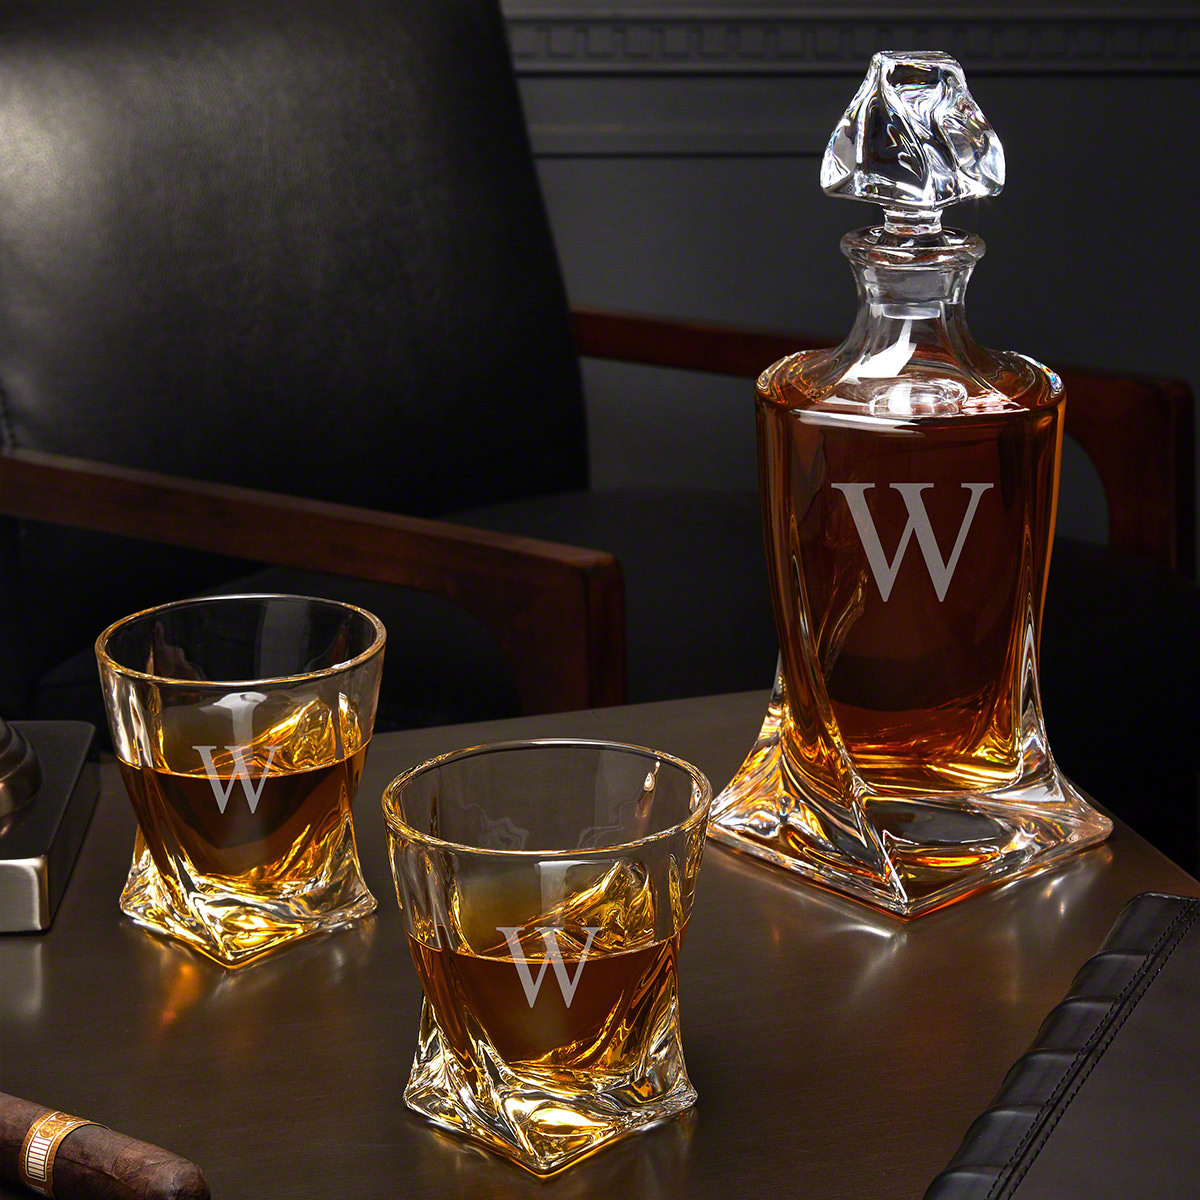 Personalized-Twist-Decanter-and-Twist-Glasses